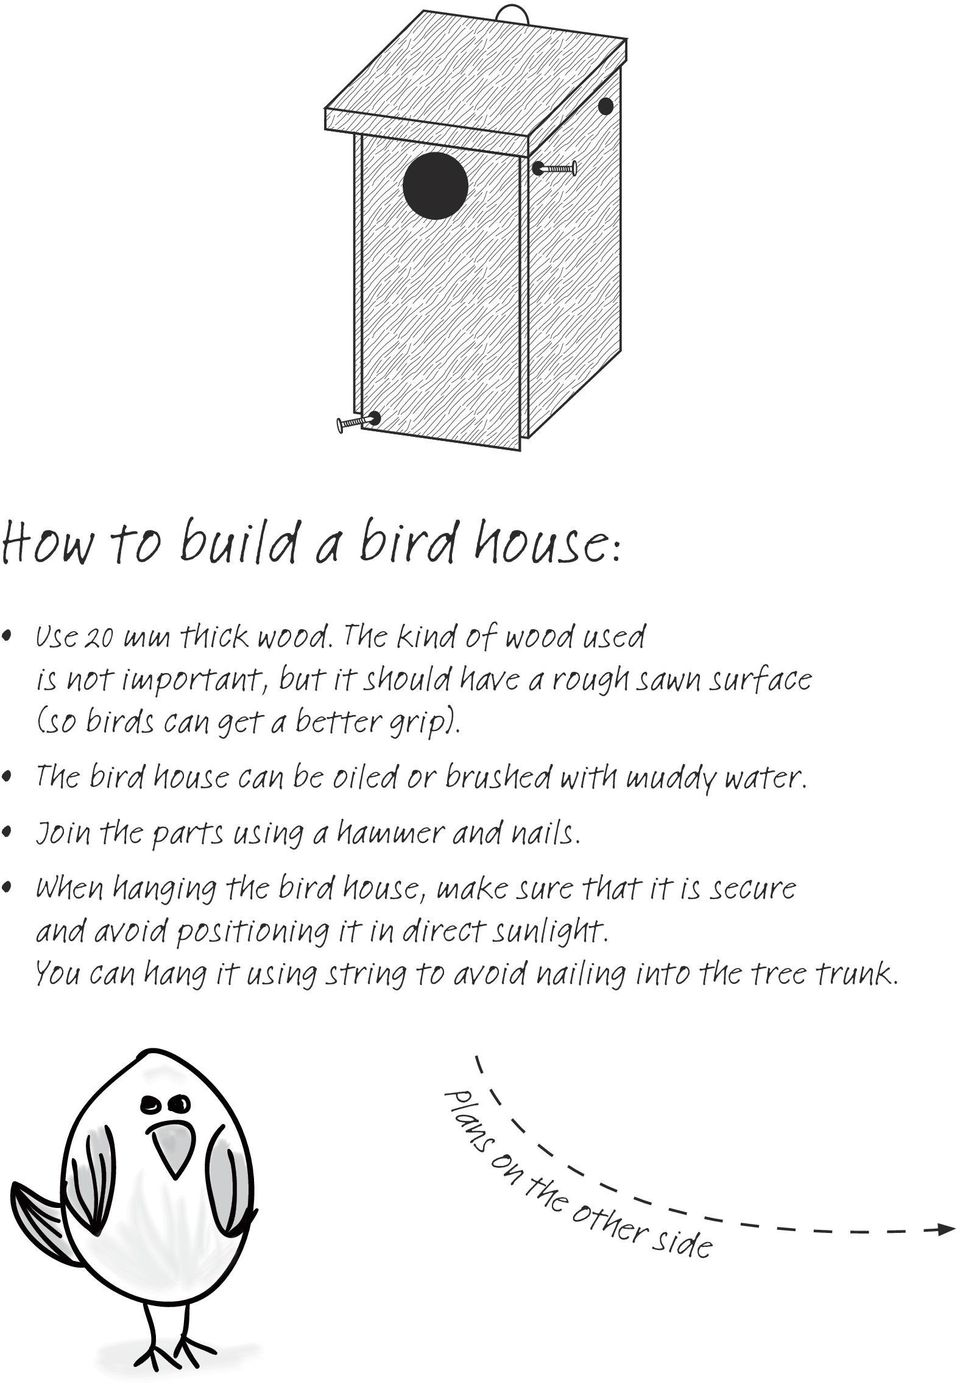 Baksida The bird house can be oiled or brushed with muddy water. Join the parts using a haer and nails.